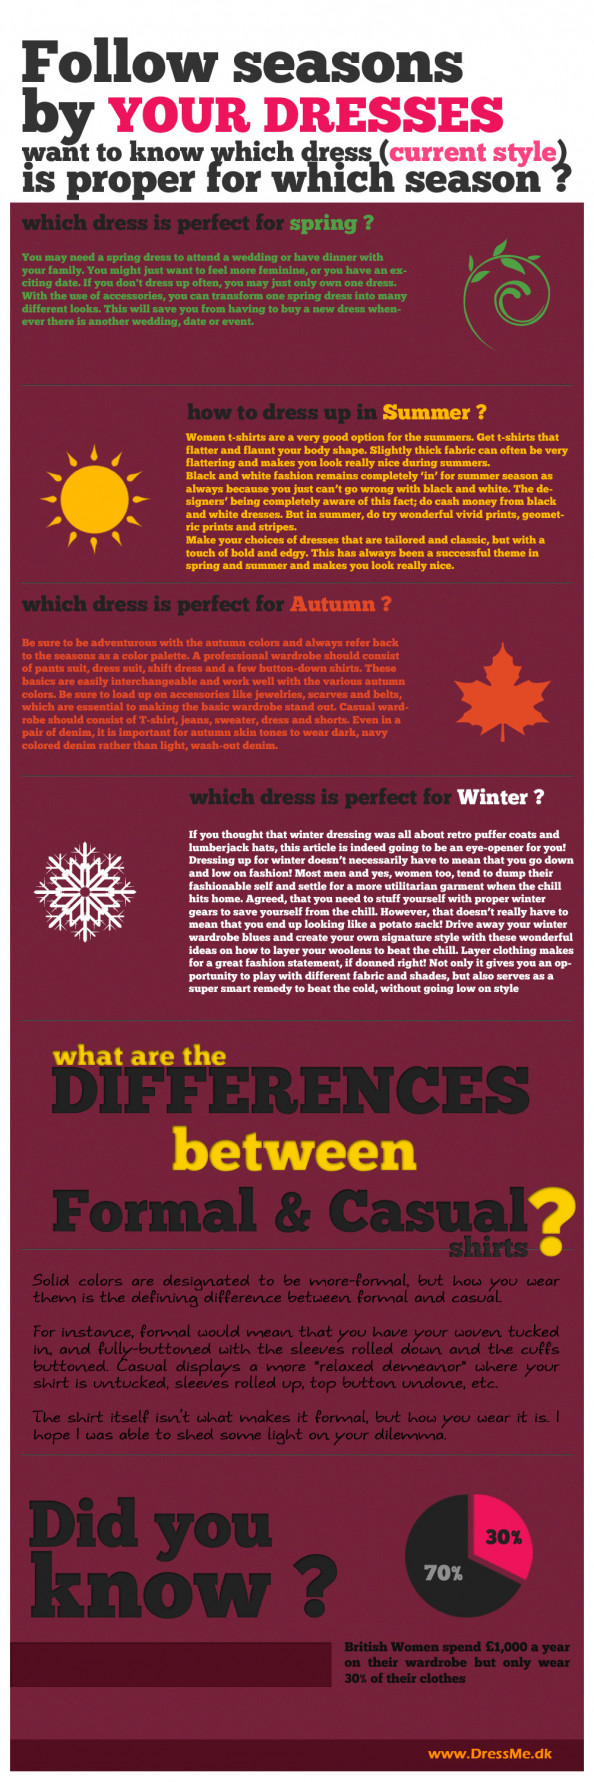 Seasons by Dresses Infographic